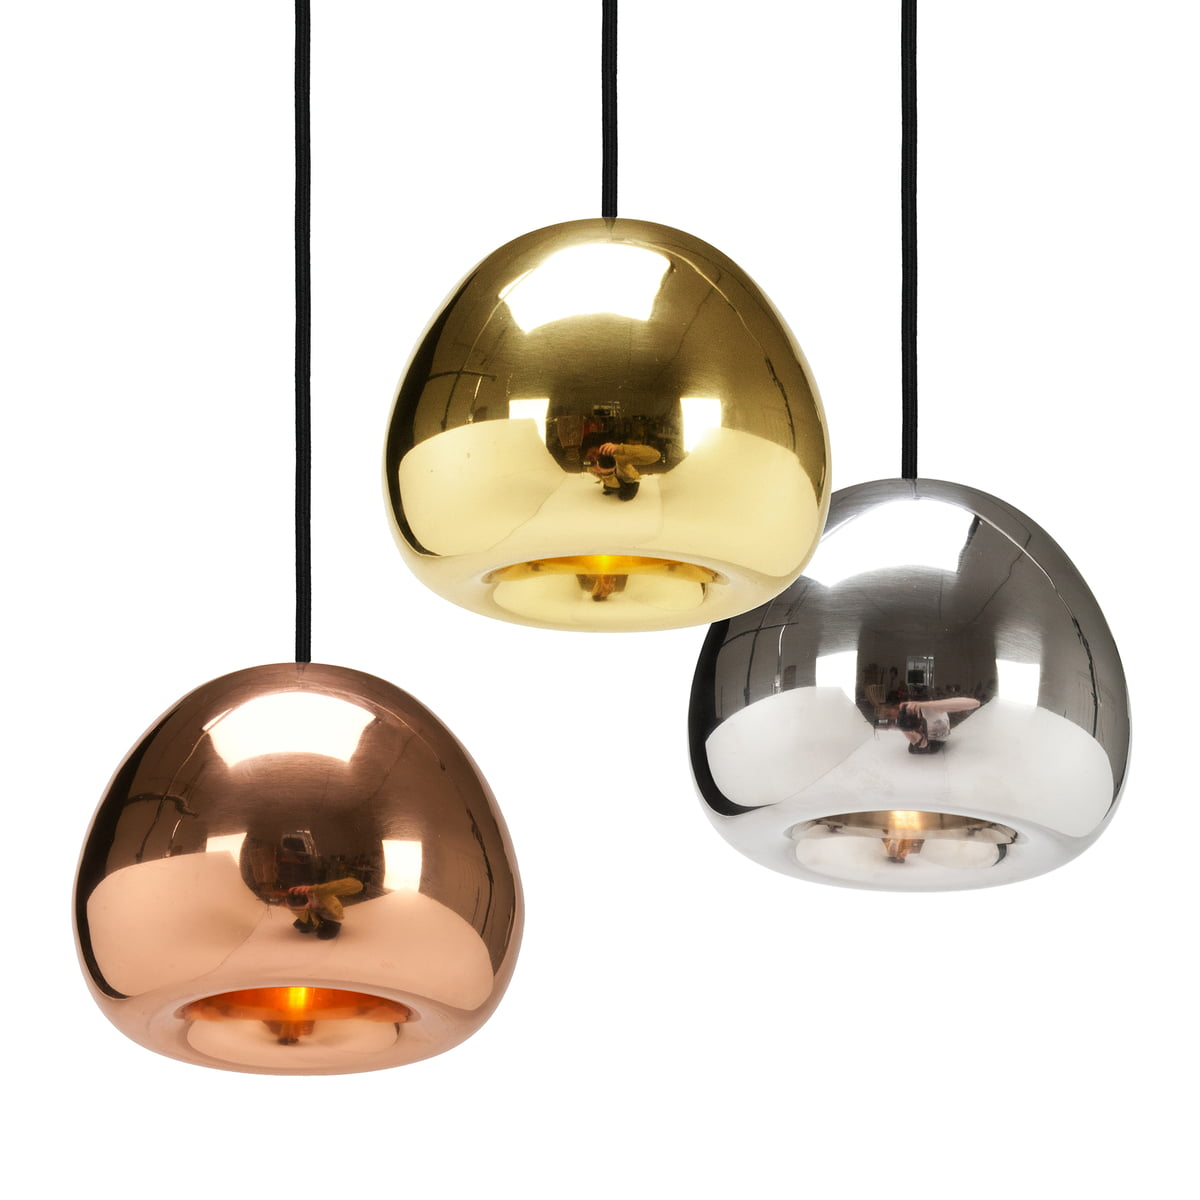 Void pendant lamp by tom dixon in the shop void pendant lamps by tom dixon aloadofball Choice Image